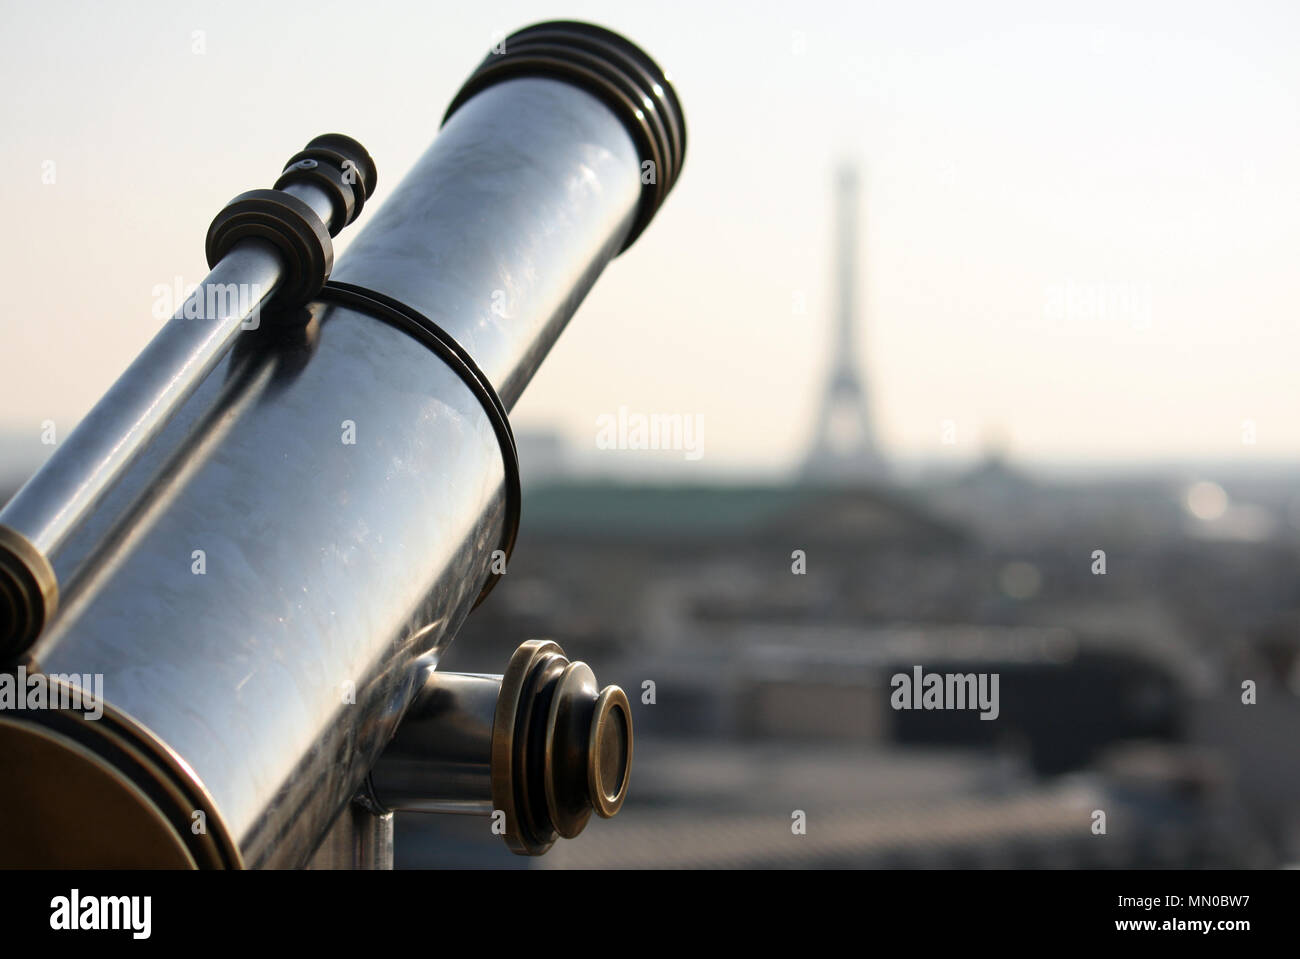 Paris viewpoint with the Eiffel tower in the background - Stock Image